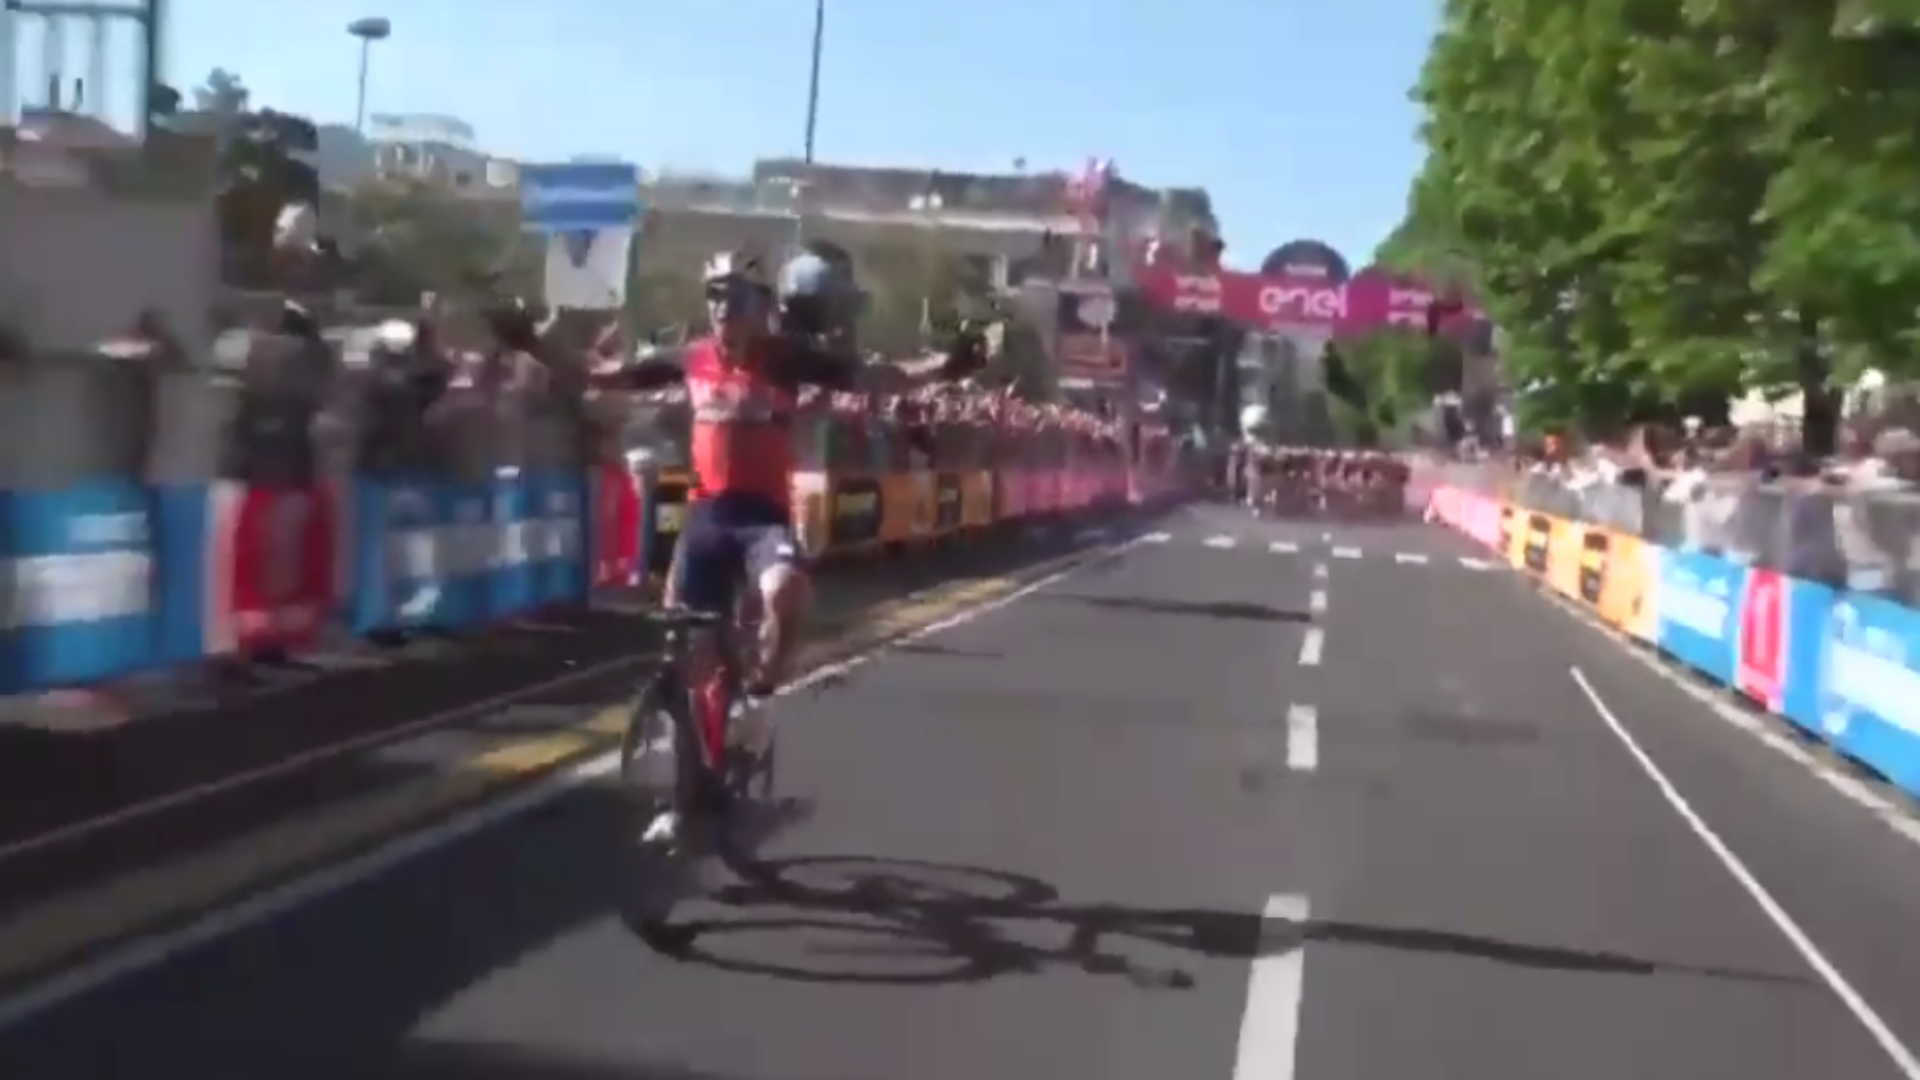 Dillier wins stage 6 of the Giro, Jungels retains lead